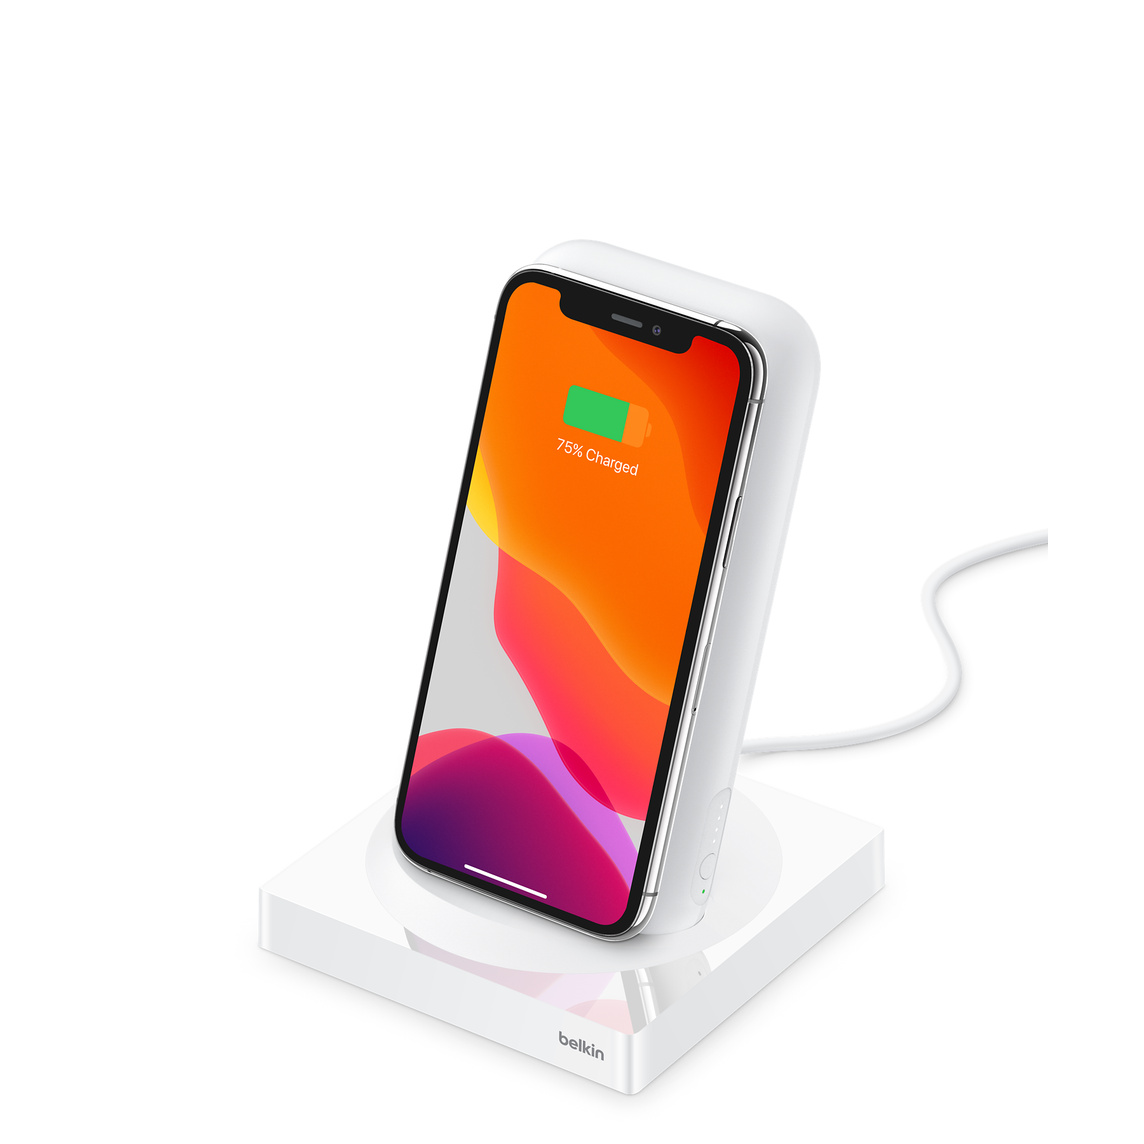 Belkin Boost Charge Portable Wireless Battery + Stand Special Edition (10,000 mAH)